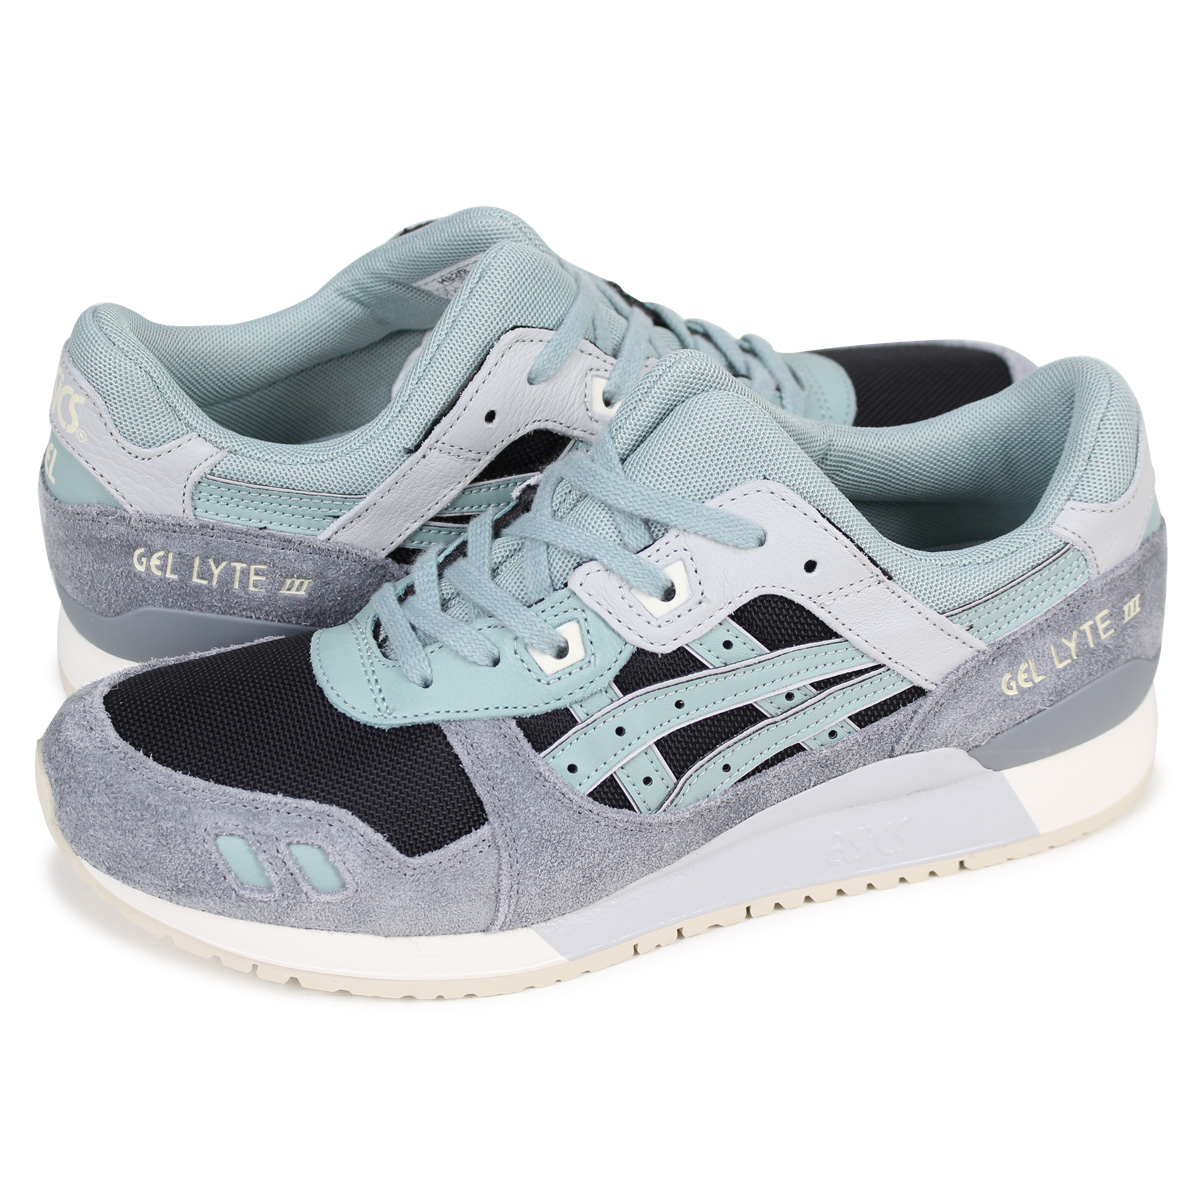 grossiste 04259 be14f asics Tiger GEL-LYTE III ASICS tiger gel light 3 sneakers H820L-9046 men  blue [2/20 Shinnyu load] [182]